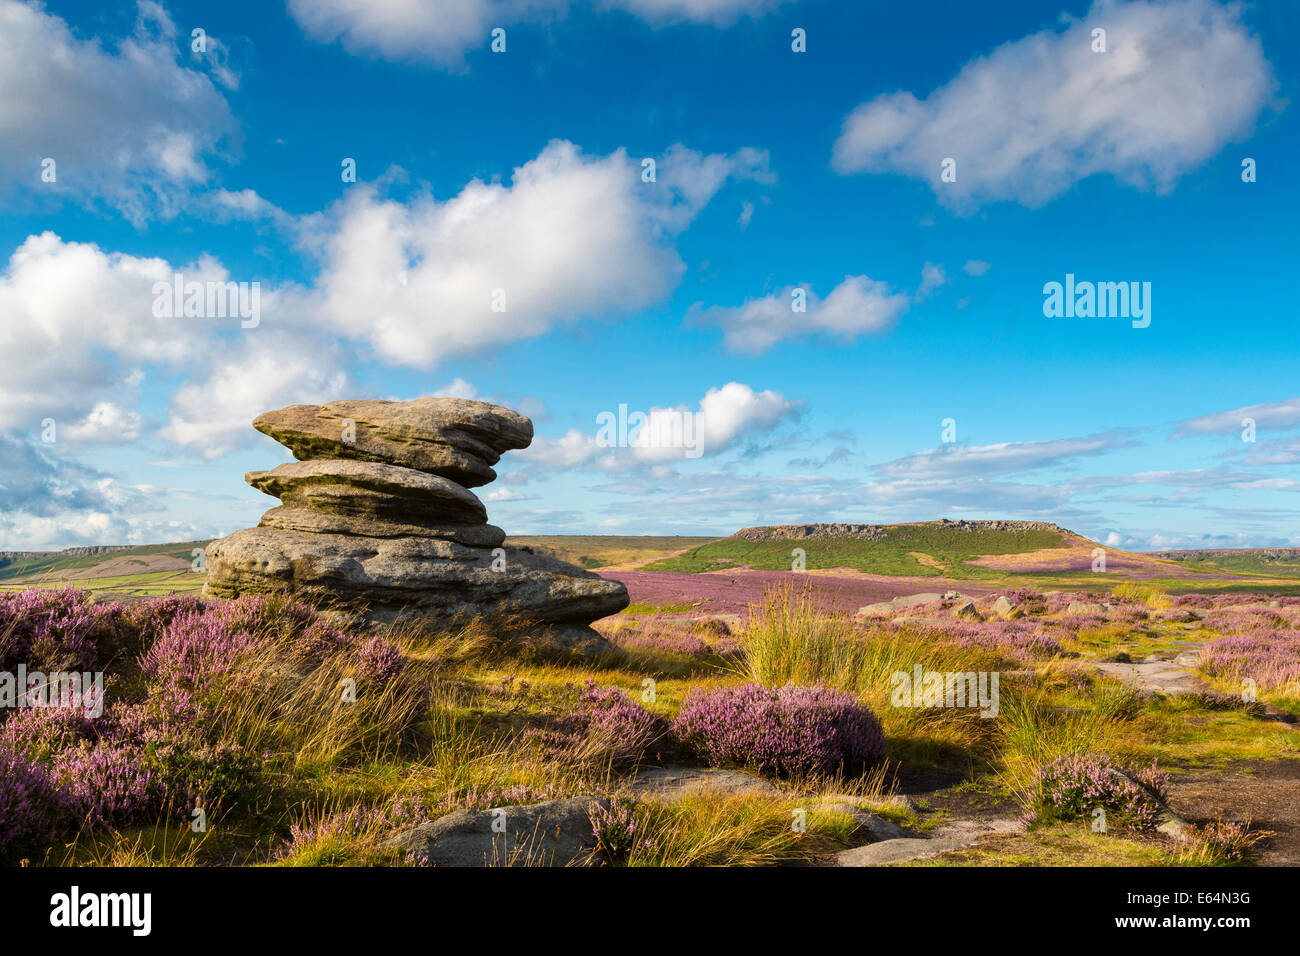 View from Hathersage Moor in Peak District National Park, Derbyshire, England, UK - Stock Image